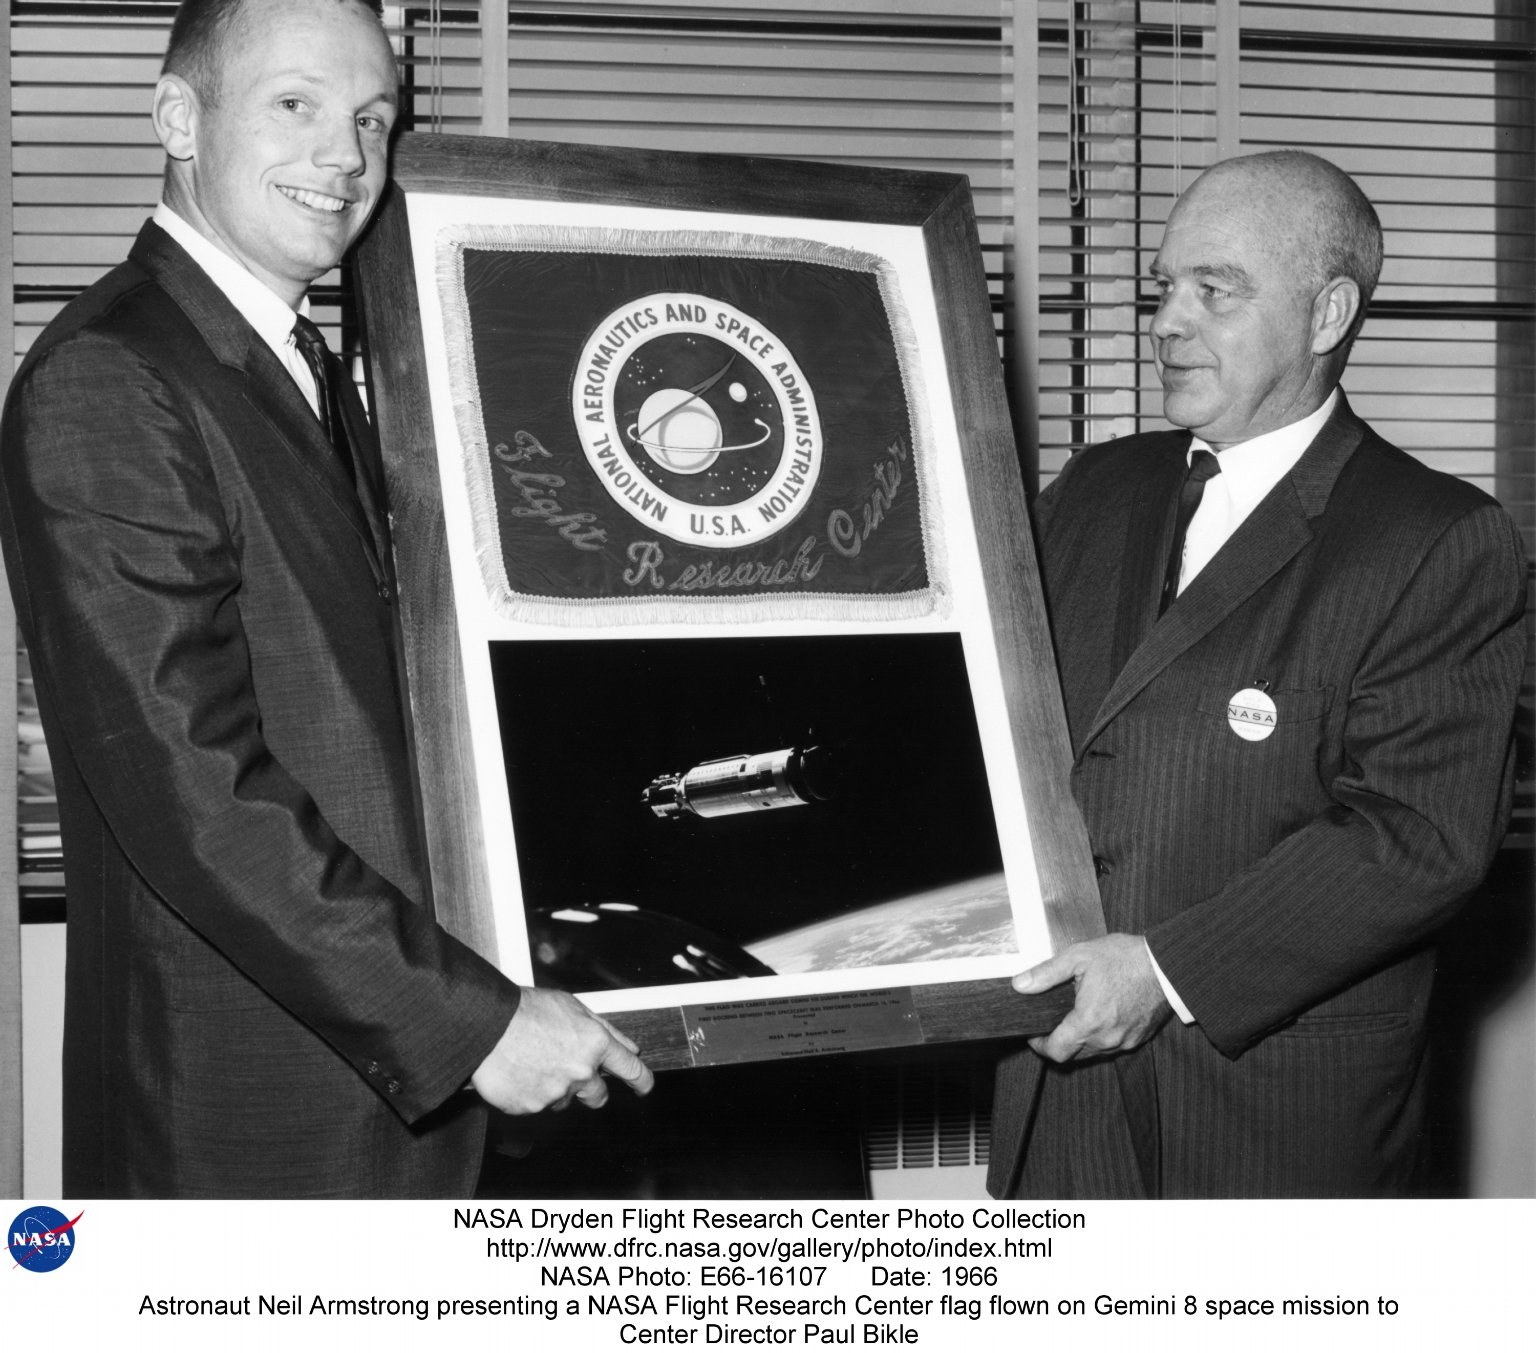 Astronaut Neil Armstrong presenting a NASA Flight Research Center flag flown on Gemini 8 space missi